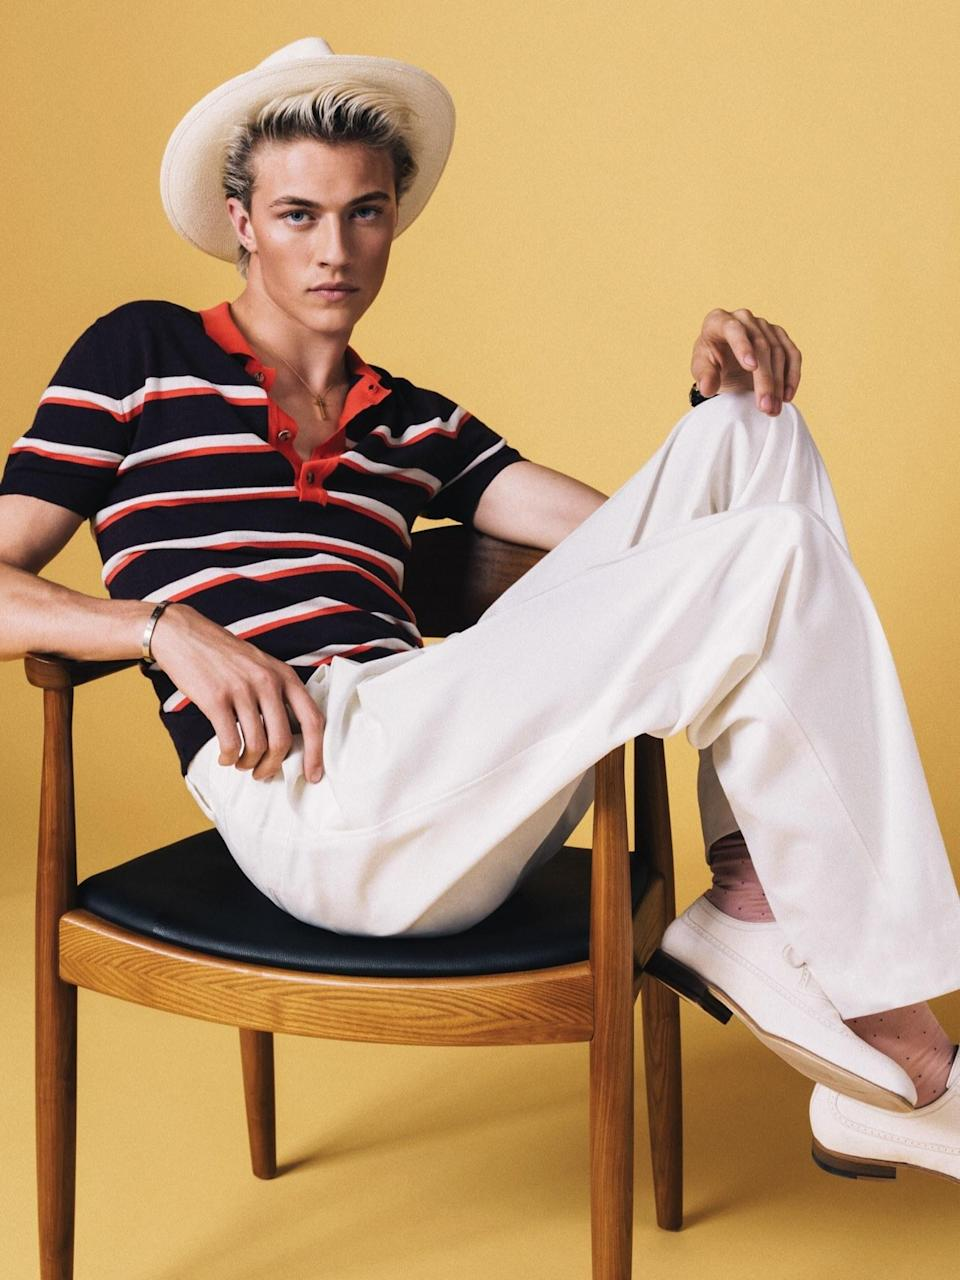 Try a pair of white dress trousers with the polo you were set to wear—instead of jeans—and wait for the compliments come rolling in.